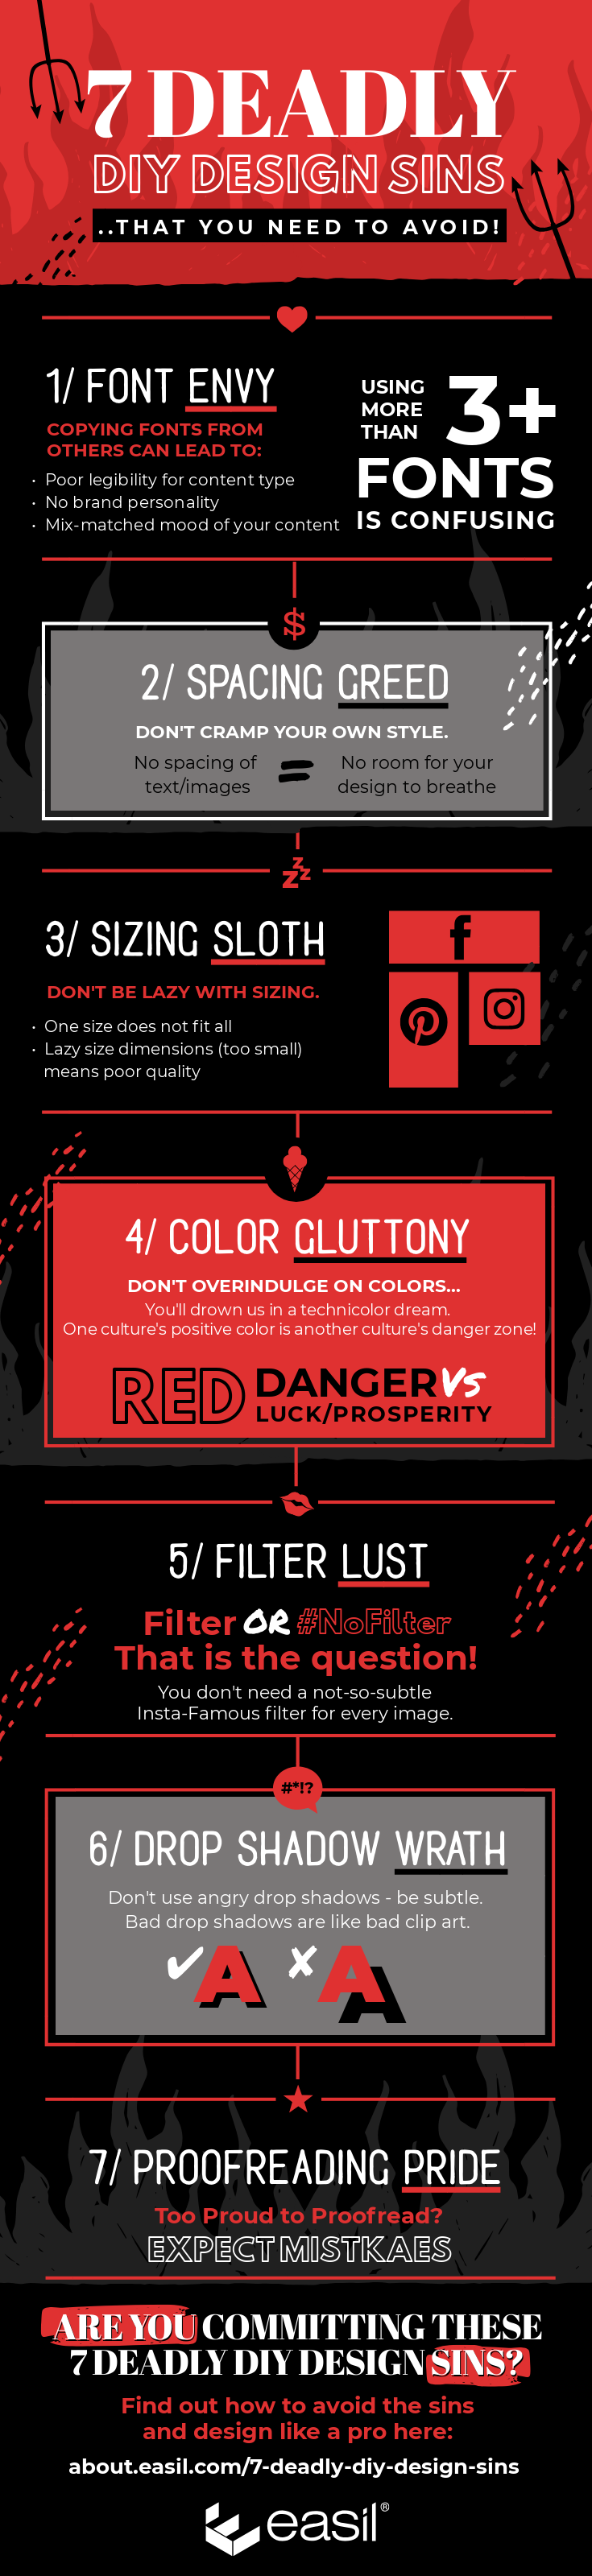 7 Deadly DIY Design Sins Infographic - 7 Deadly DIY Design Sins (and how to avoid them!)